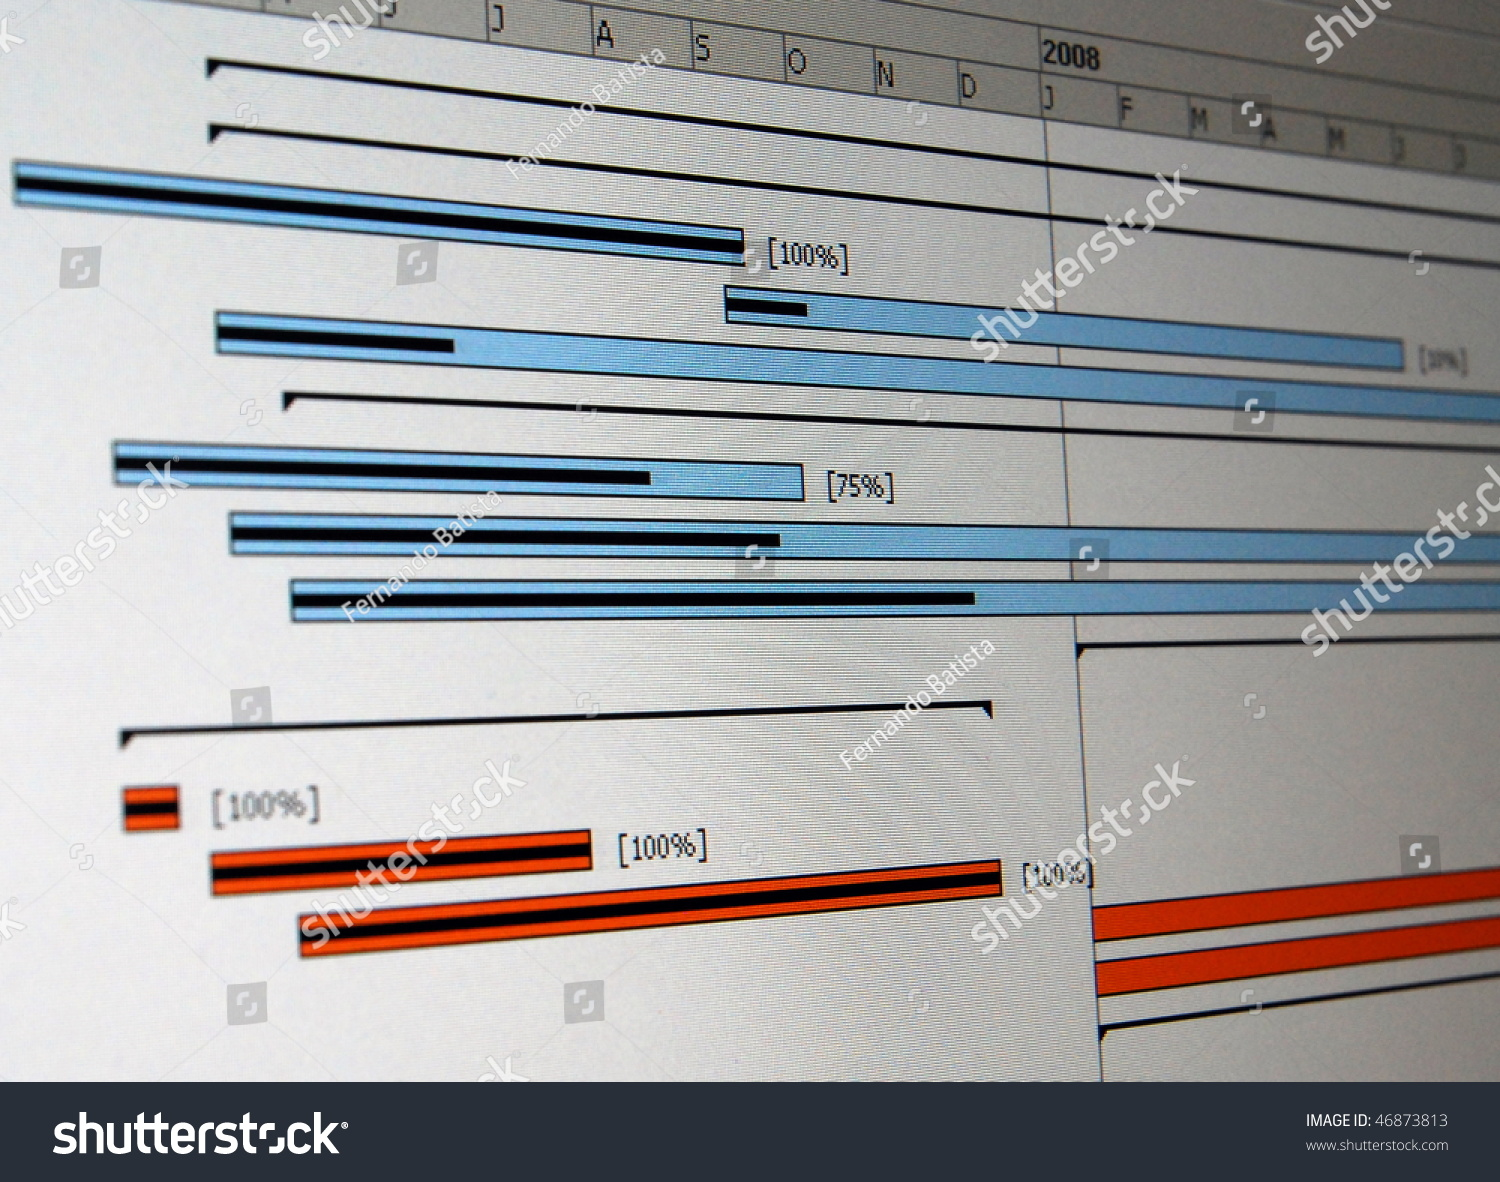 Gantt chart type bar chart that stock photo 46873813 shutterstock a gantt chart is a type of bar chart that illustrates a project schedule nvjuhfo Images